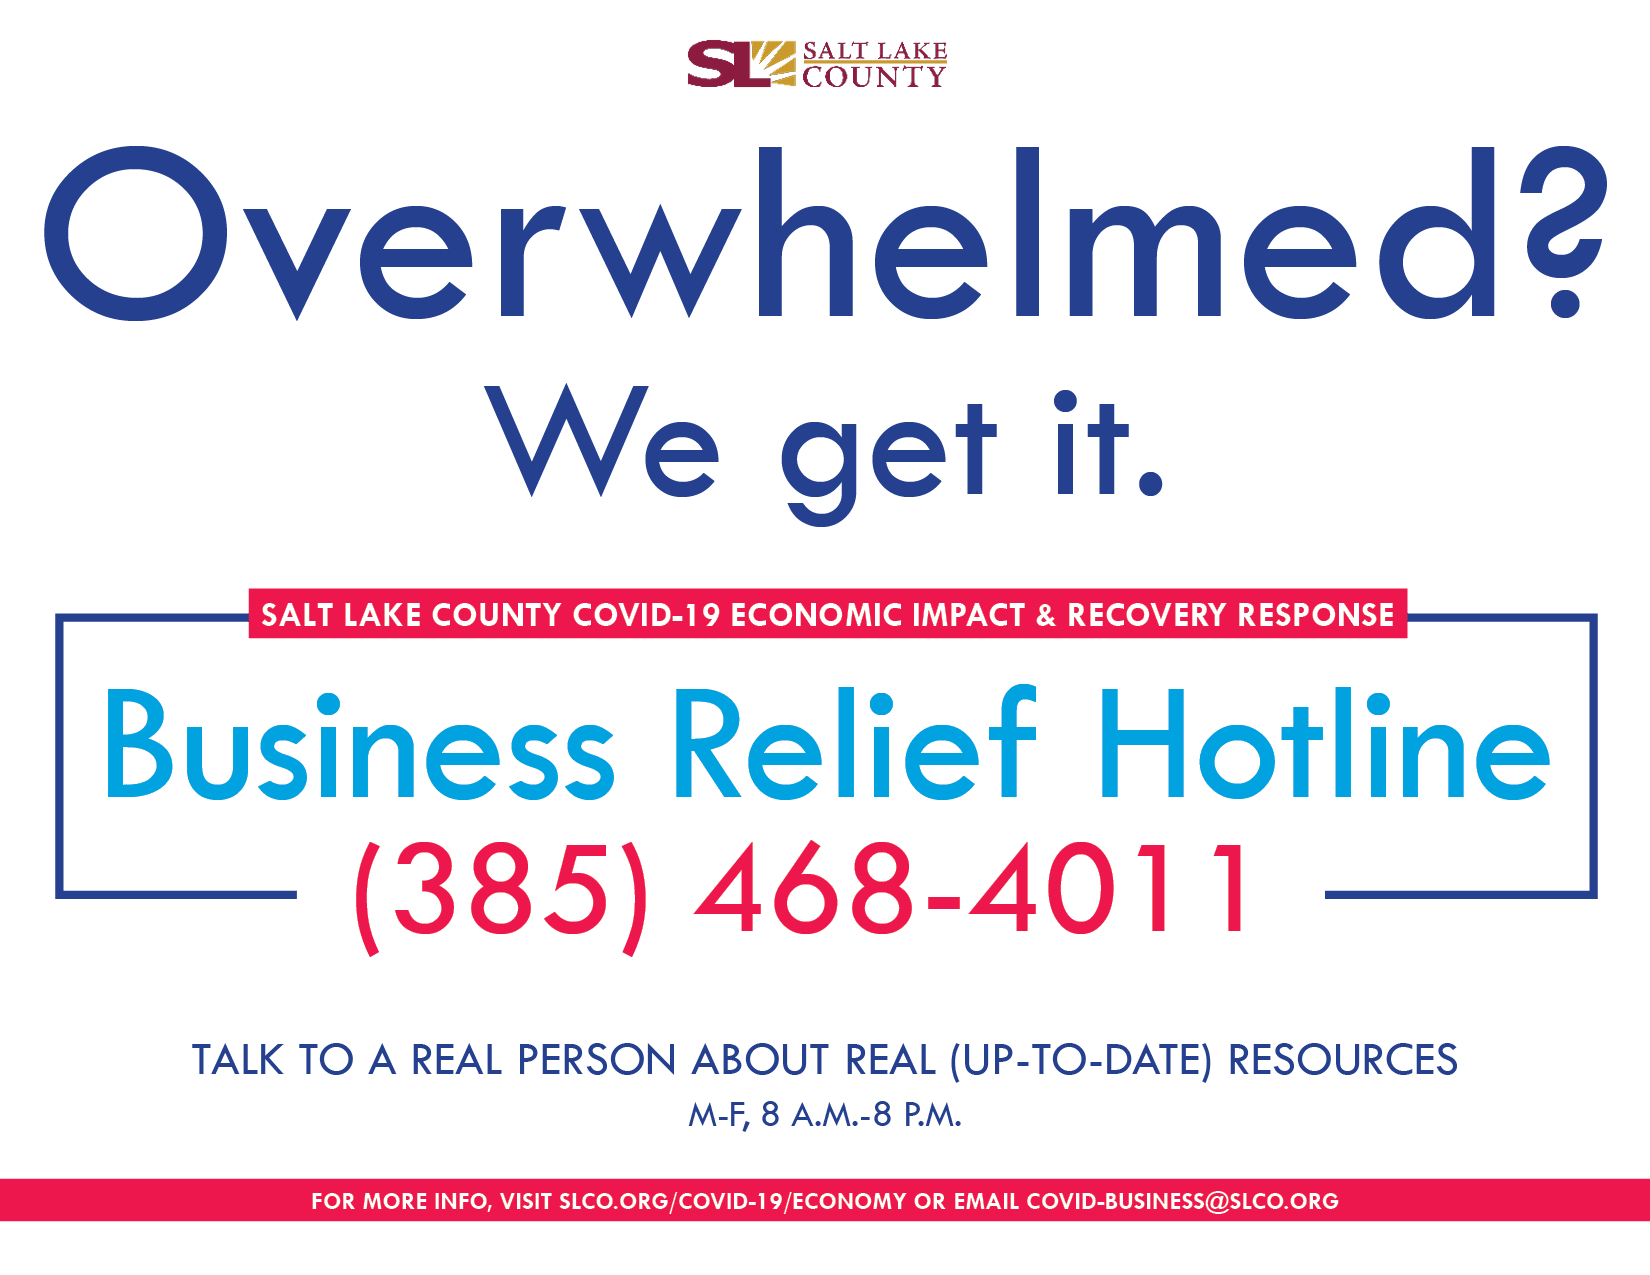 Overwhelmed COVID Business Relief Hotline 385-468-4011